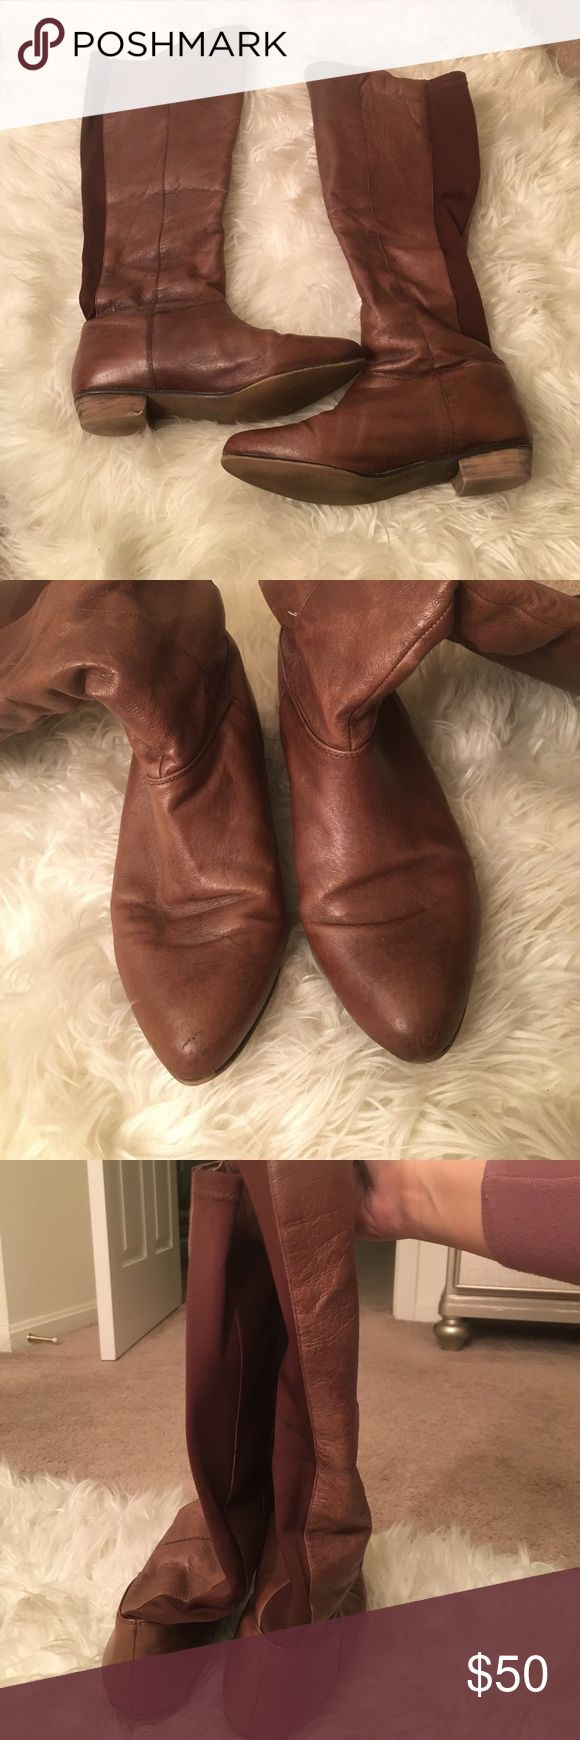 """Steve Madden """"Creation boots Like-new boots from Steve Madden. Some small watermarks on back as shoe as seen in picture. Barely worn. Perfect for the fall/winter! Steve Madden Shoes"""